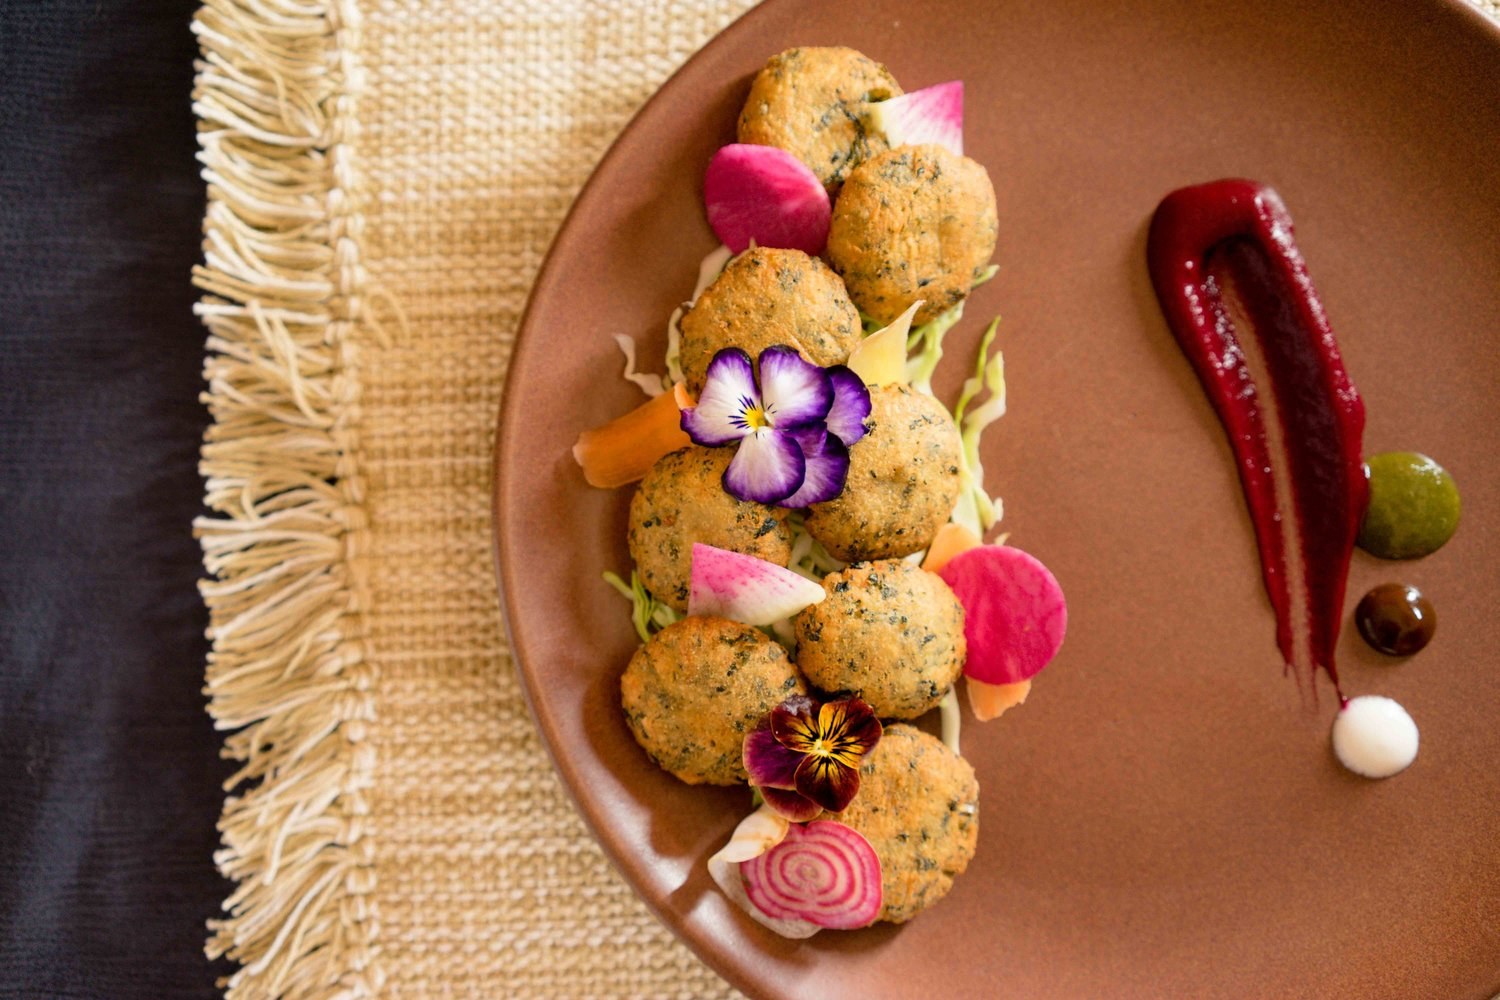 How-i-achieved-editorial-style-food-photography-for-keeva-indian-kitchen